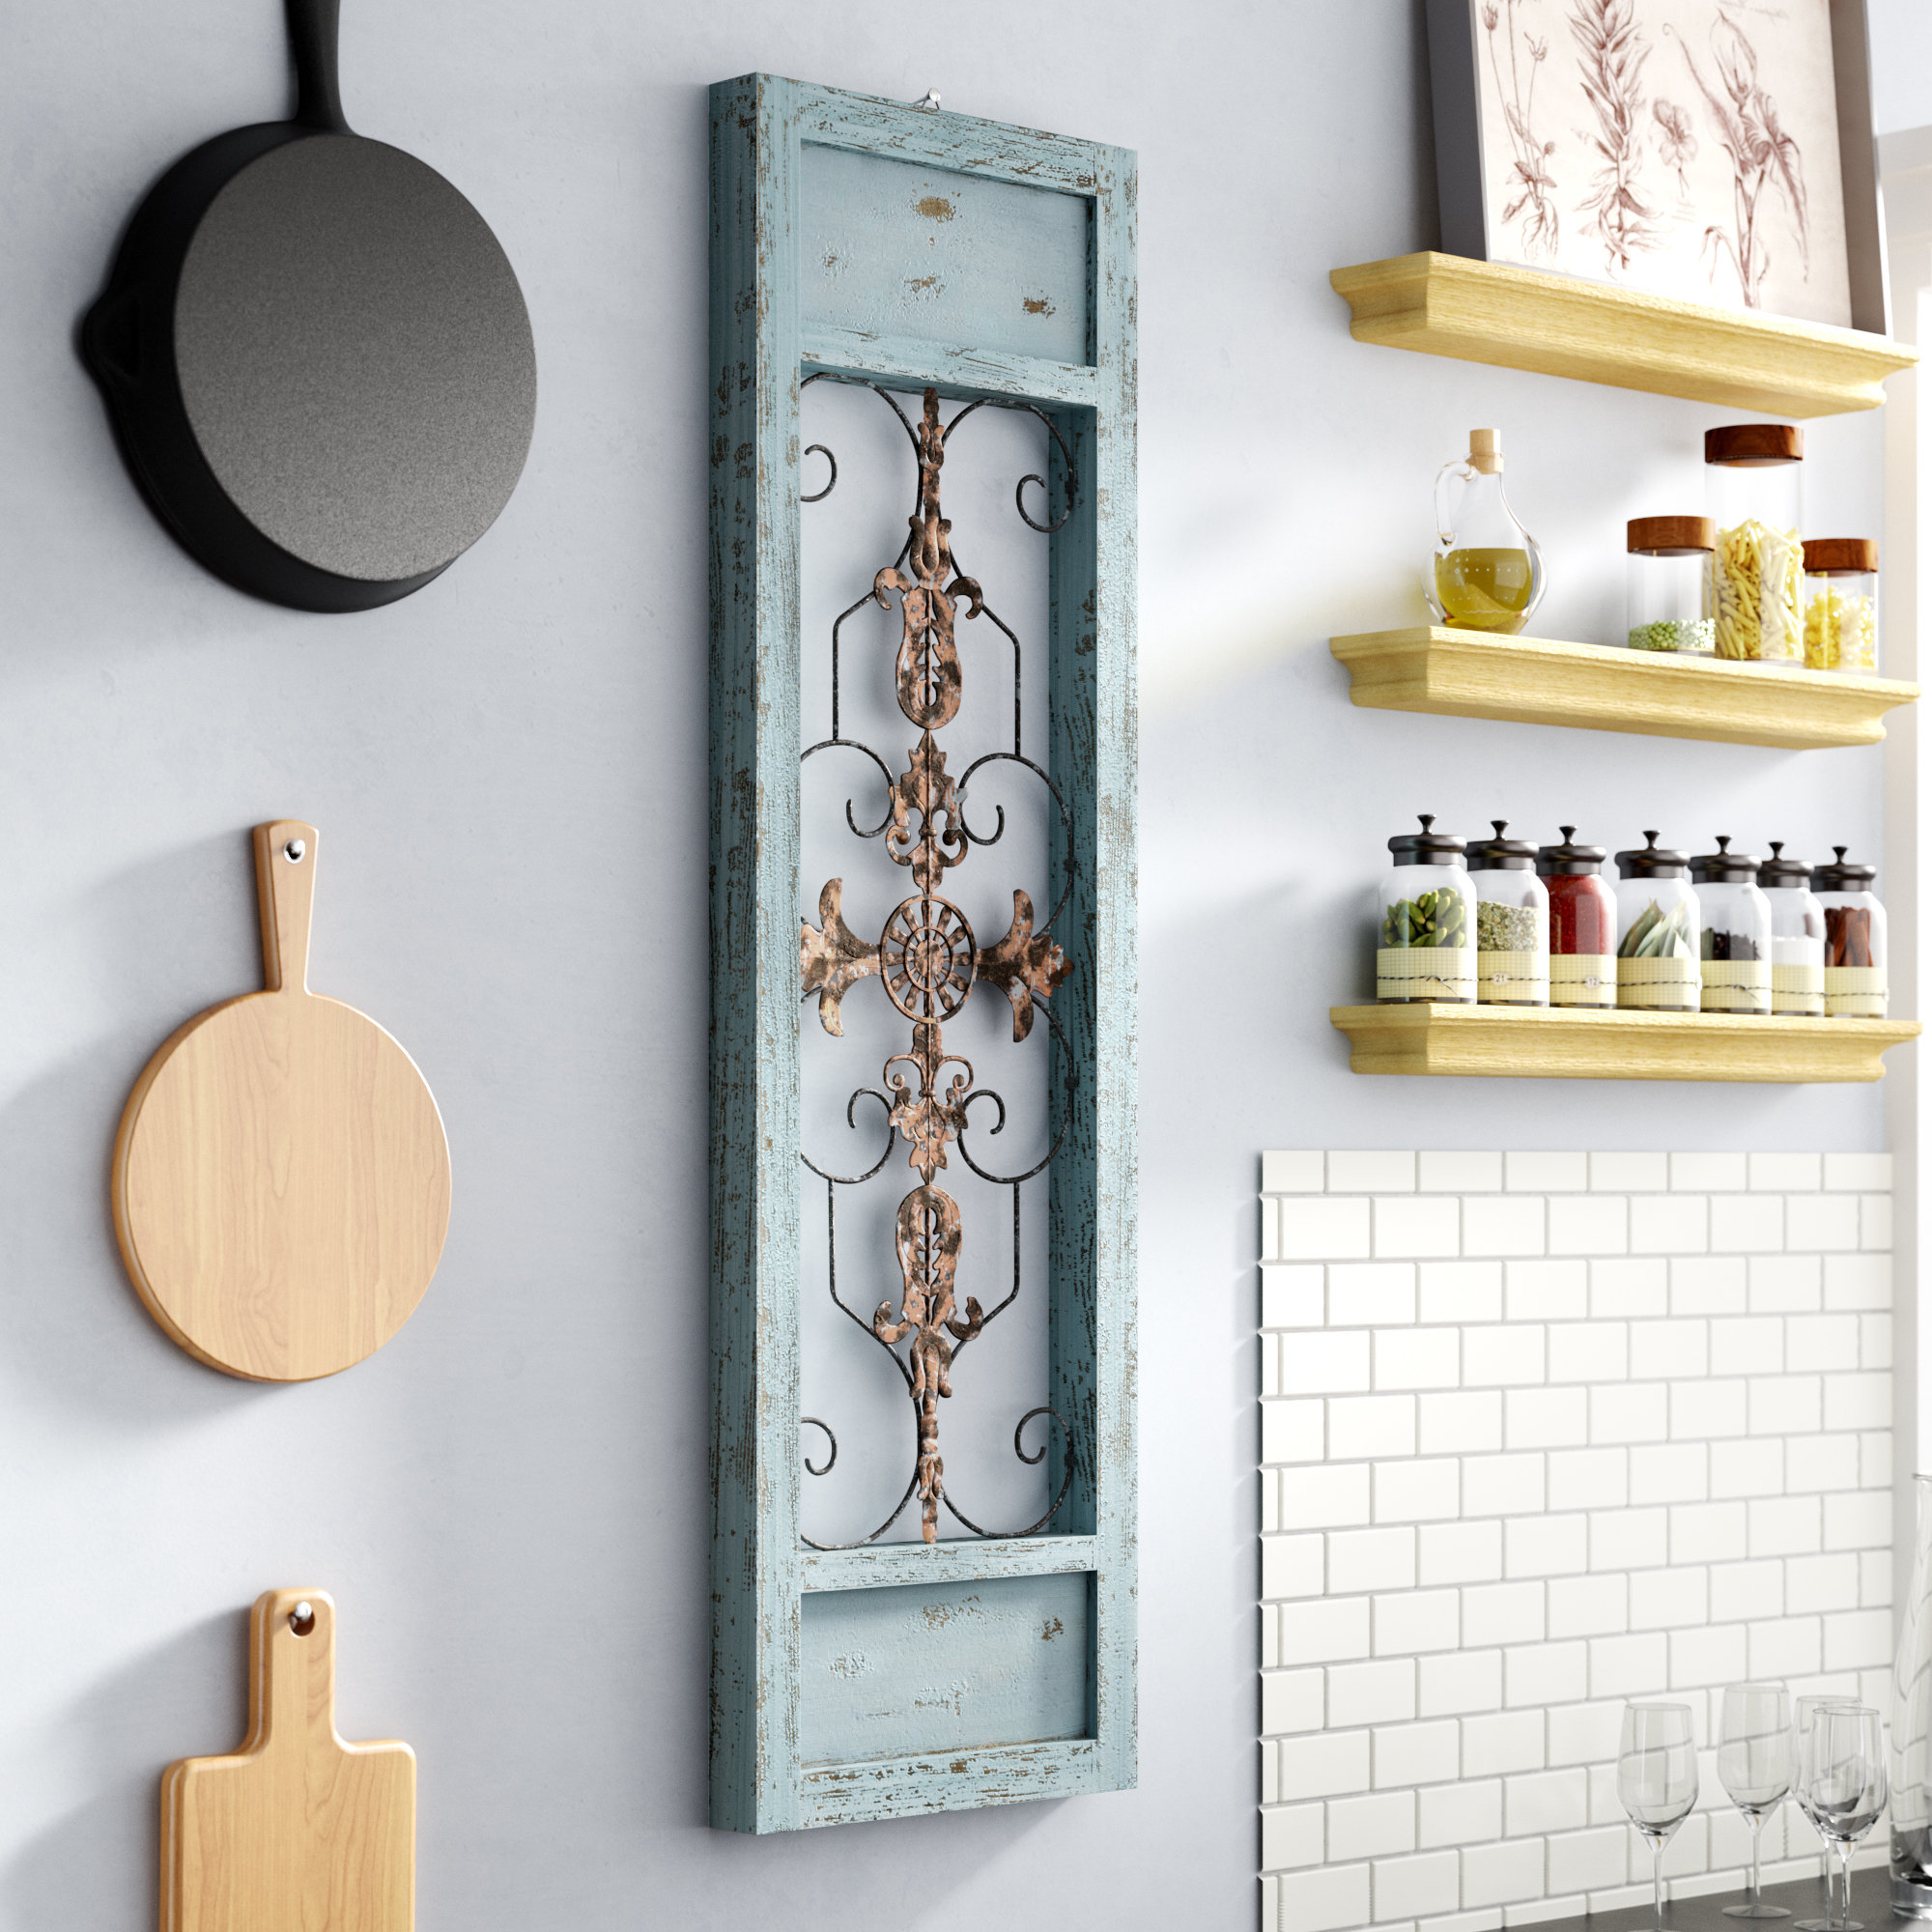 Large Metal Scroll Wall Decor | Wayfair regarding Belle Circular Scroll Wall Decor (Image 14 of 30)